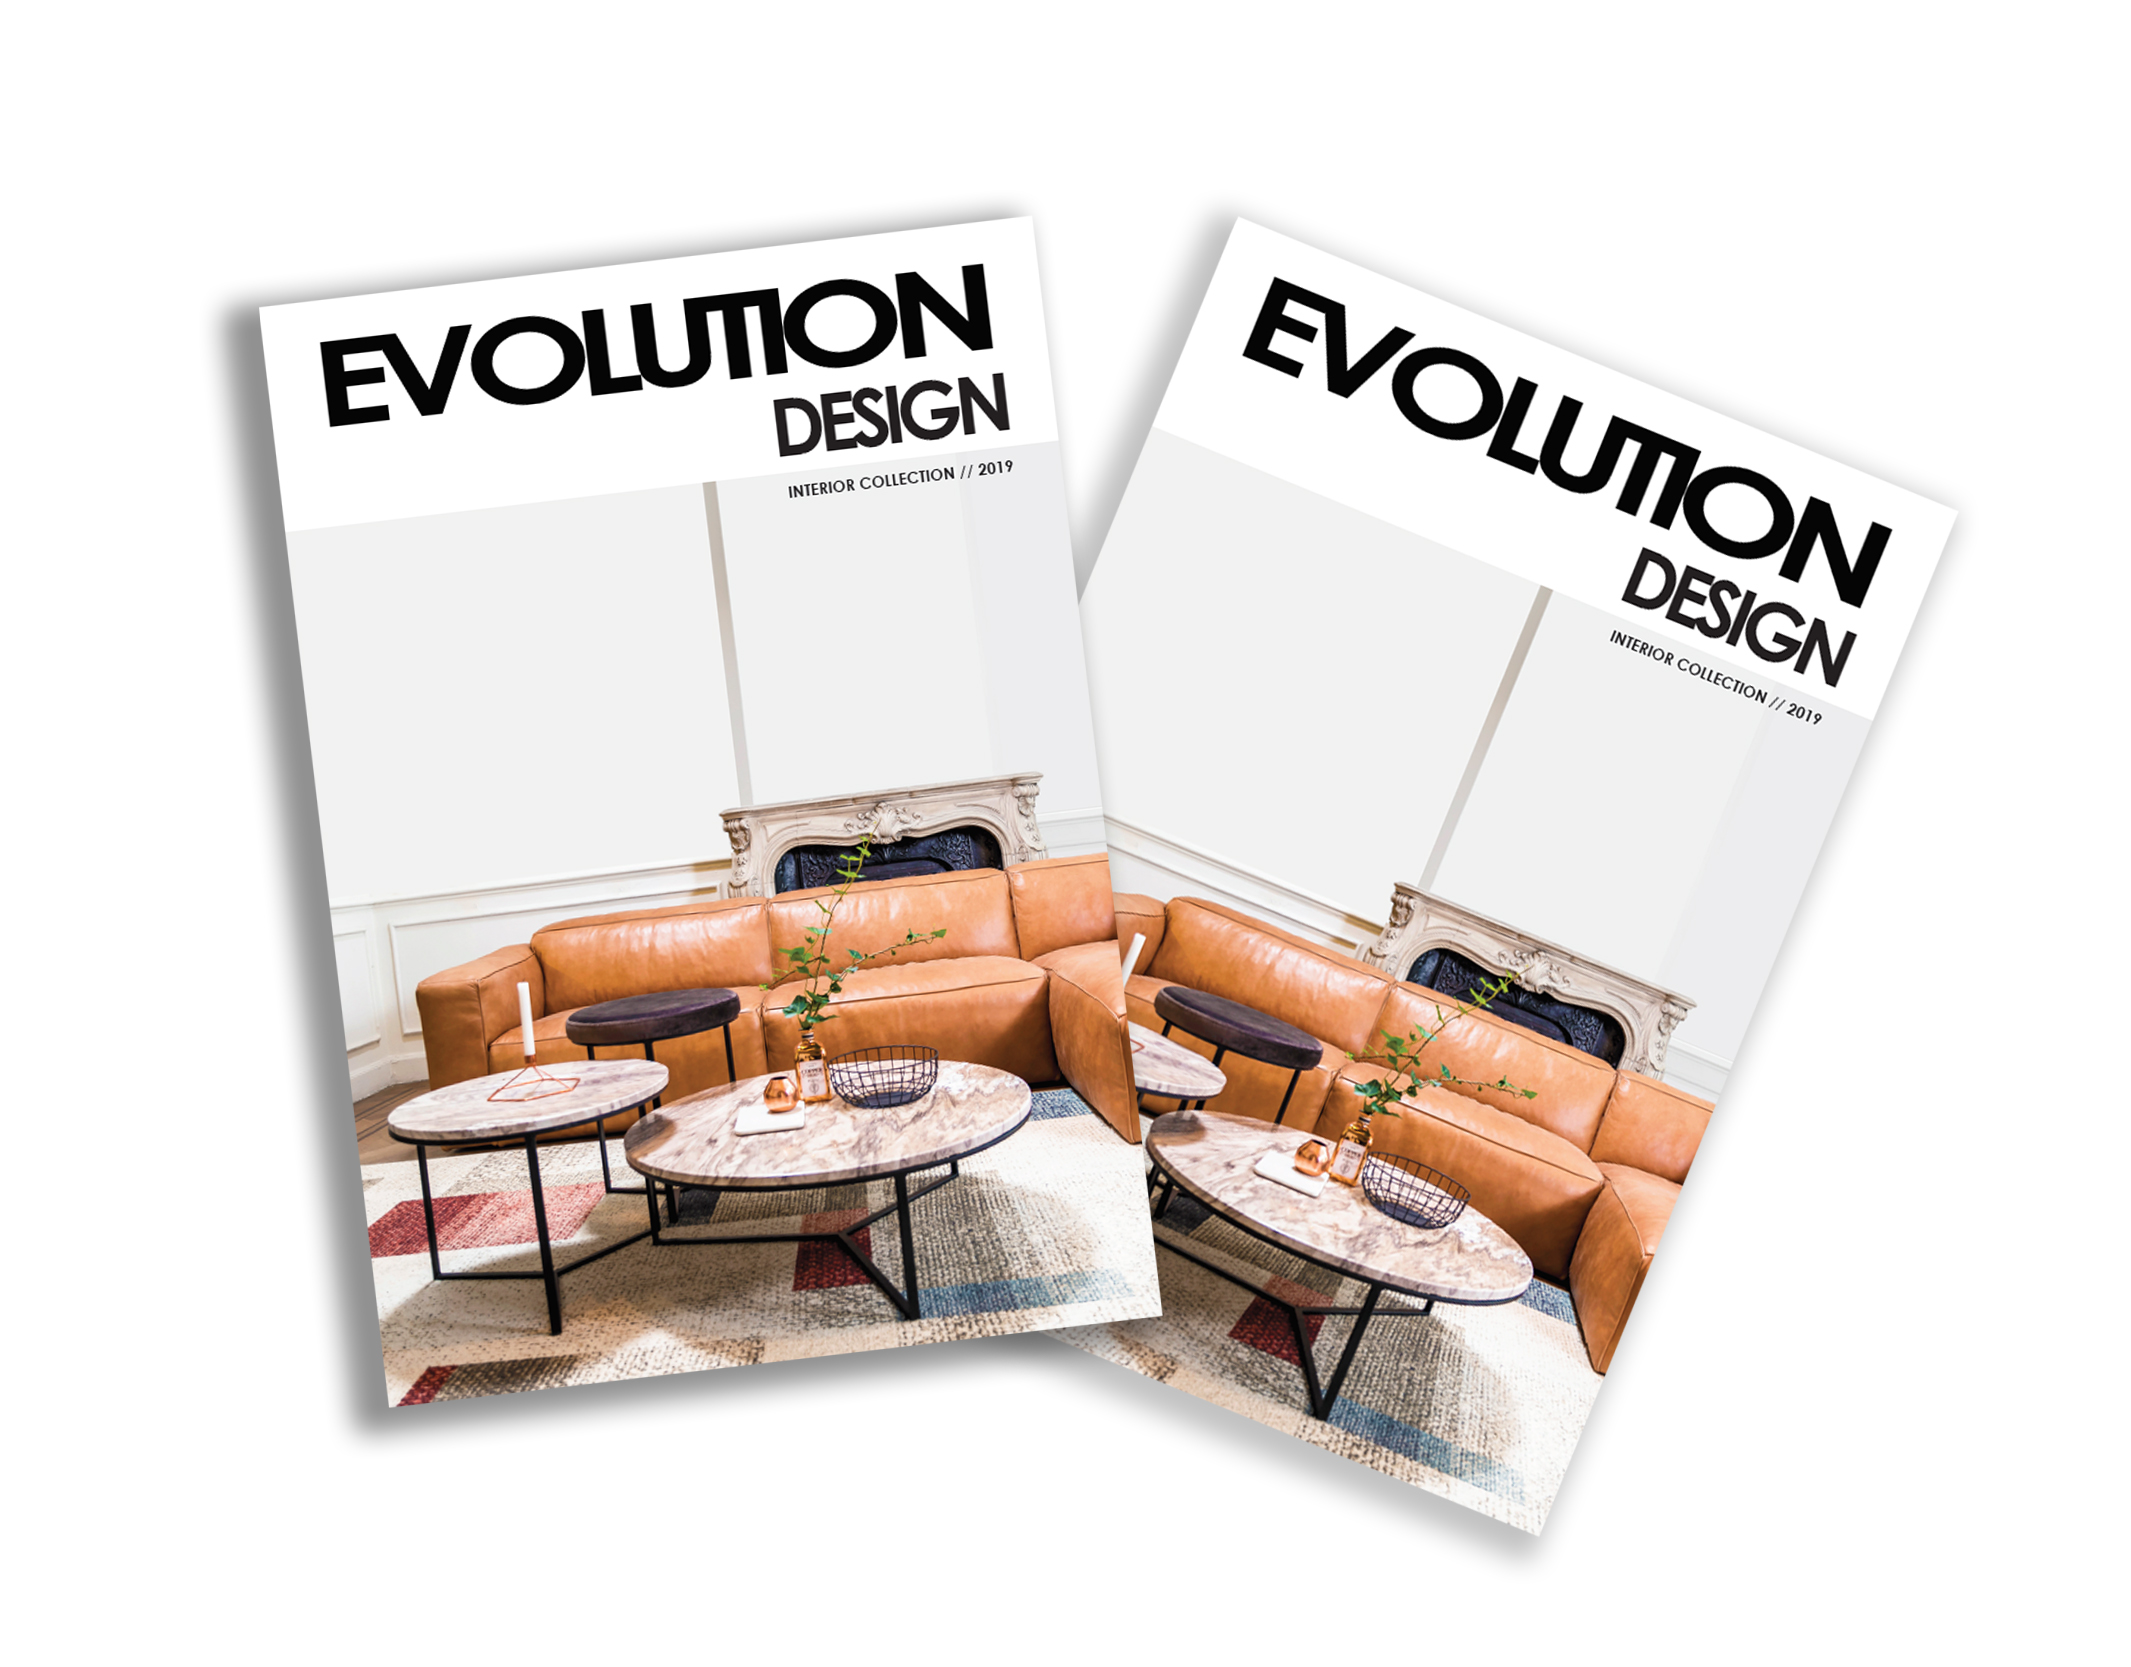 Evolution_Design_Social_Media